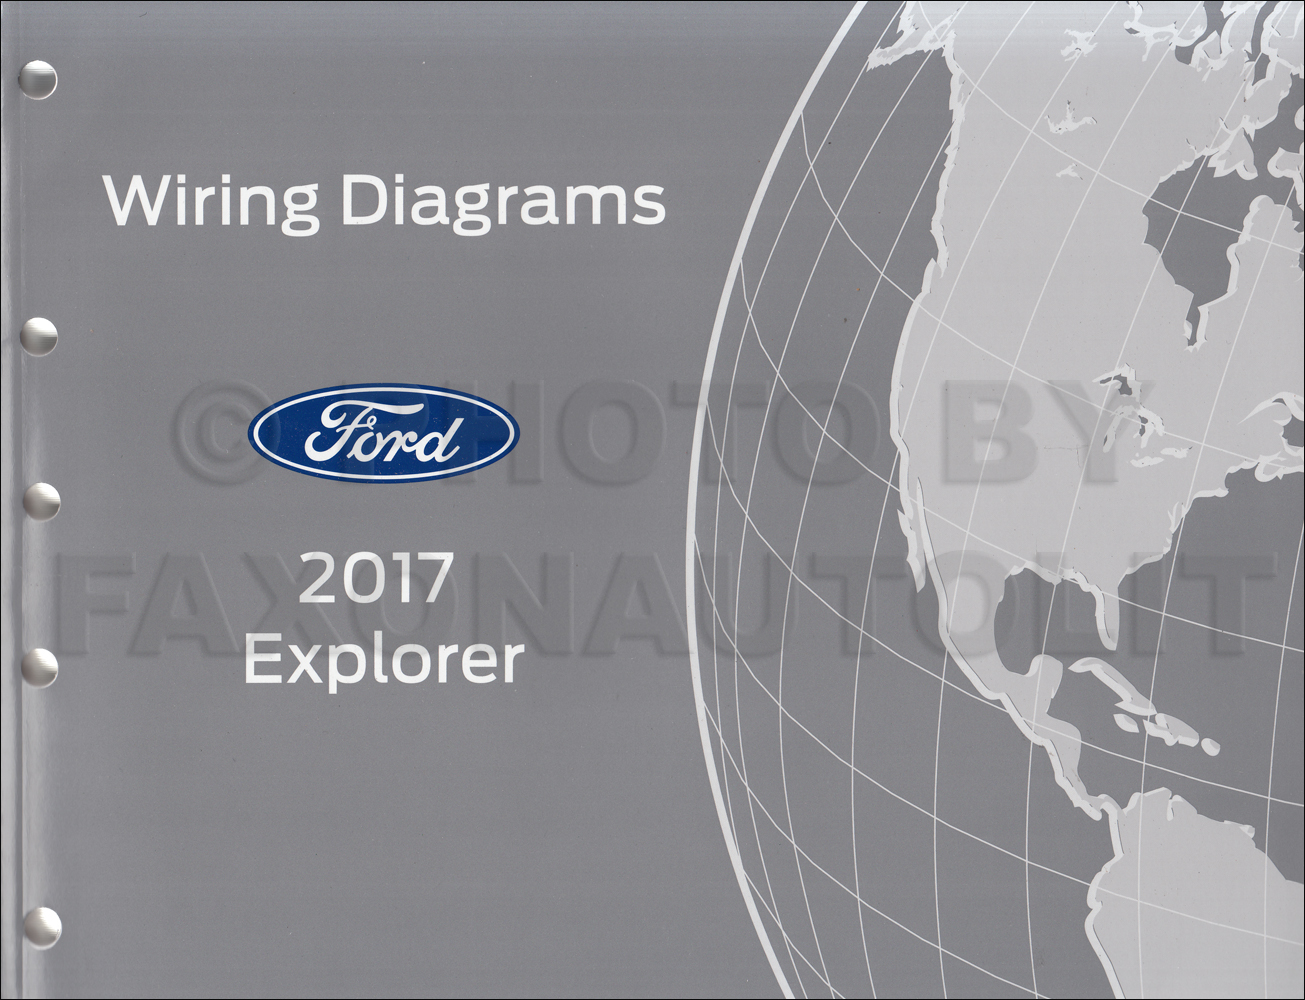 2017 Ford Explorer Wiring Diagram Manual Original Diagrams